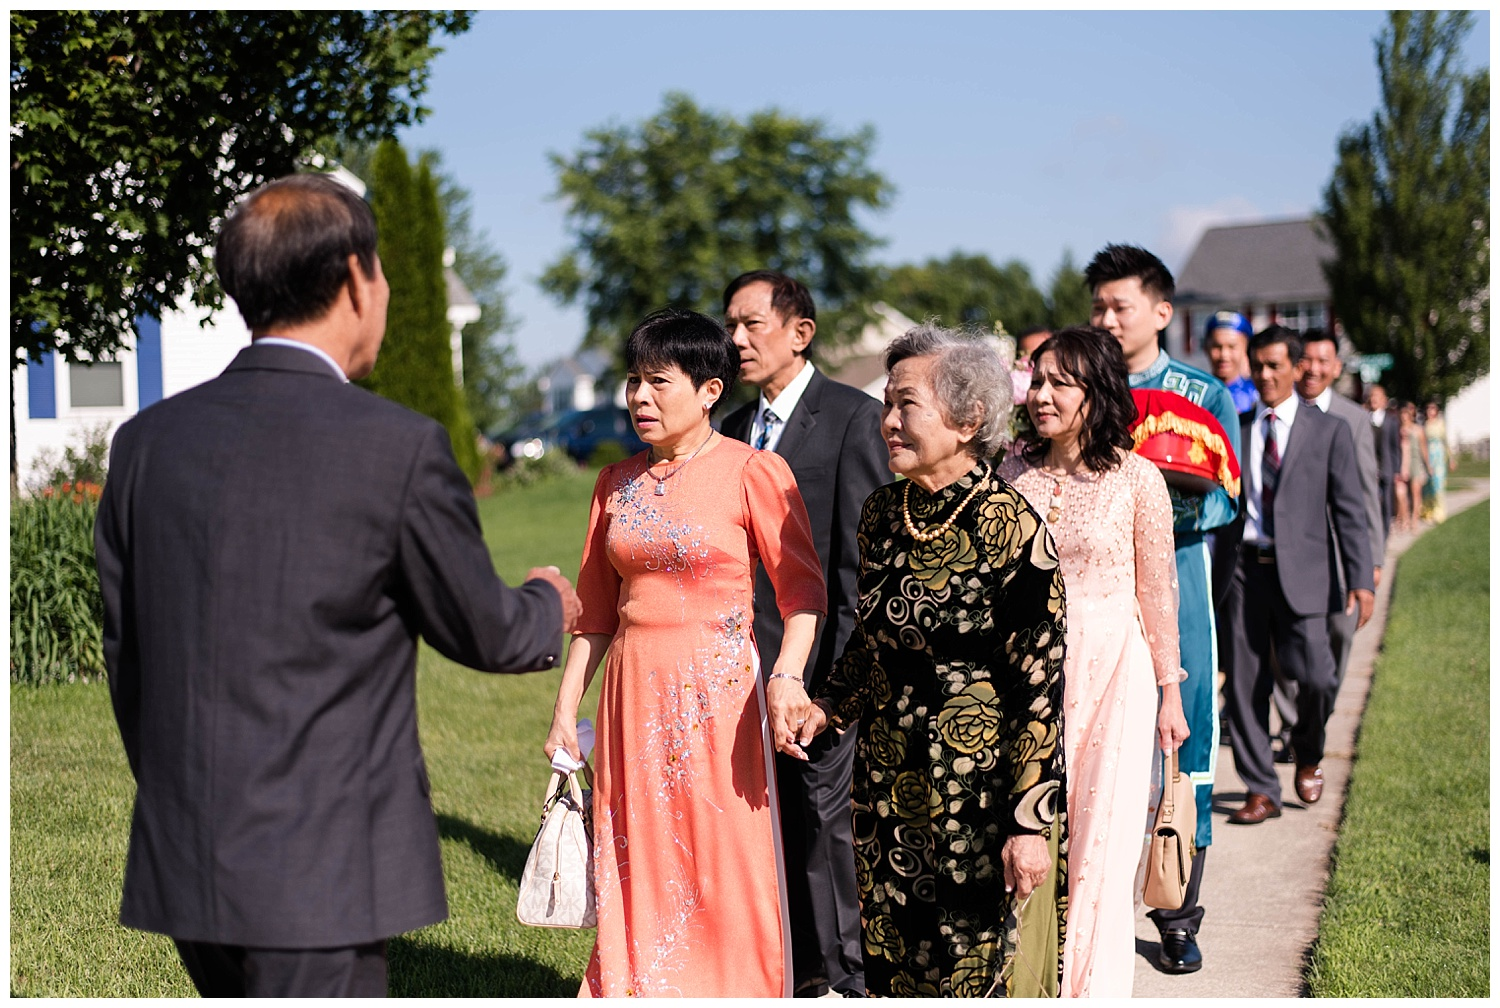 Weddings_by_Raisa_Photography_Saint_Mary_Magdalen_New_Vintage_Grand_Rapids_Michigan_Wedding_Photographer_0008.jpg